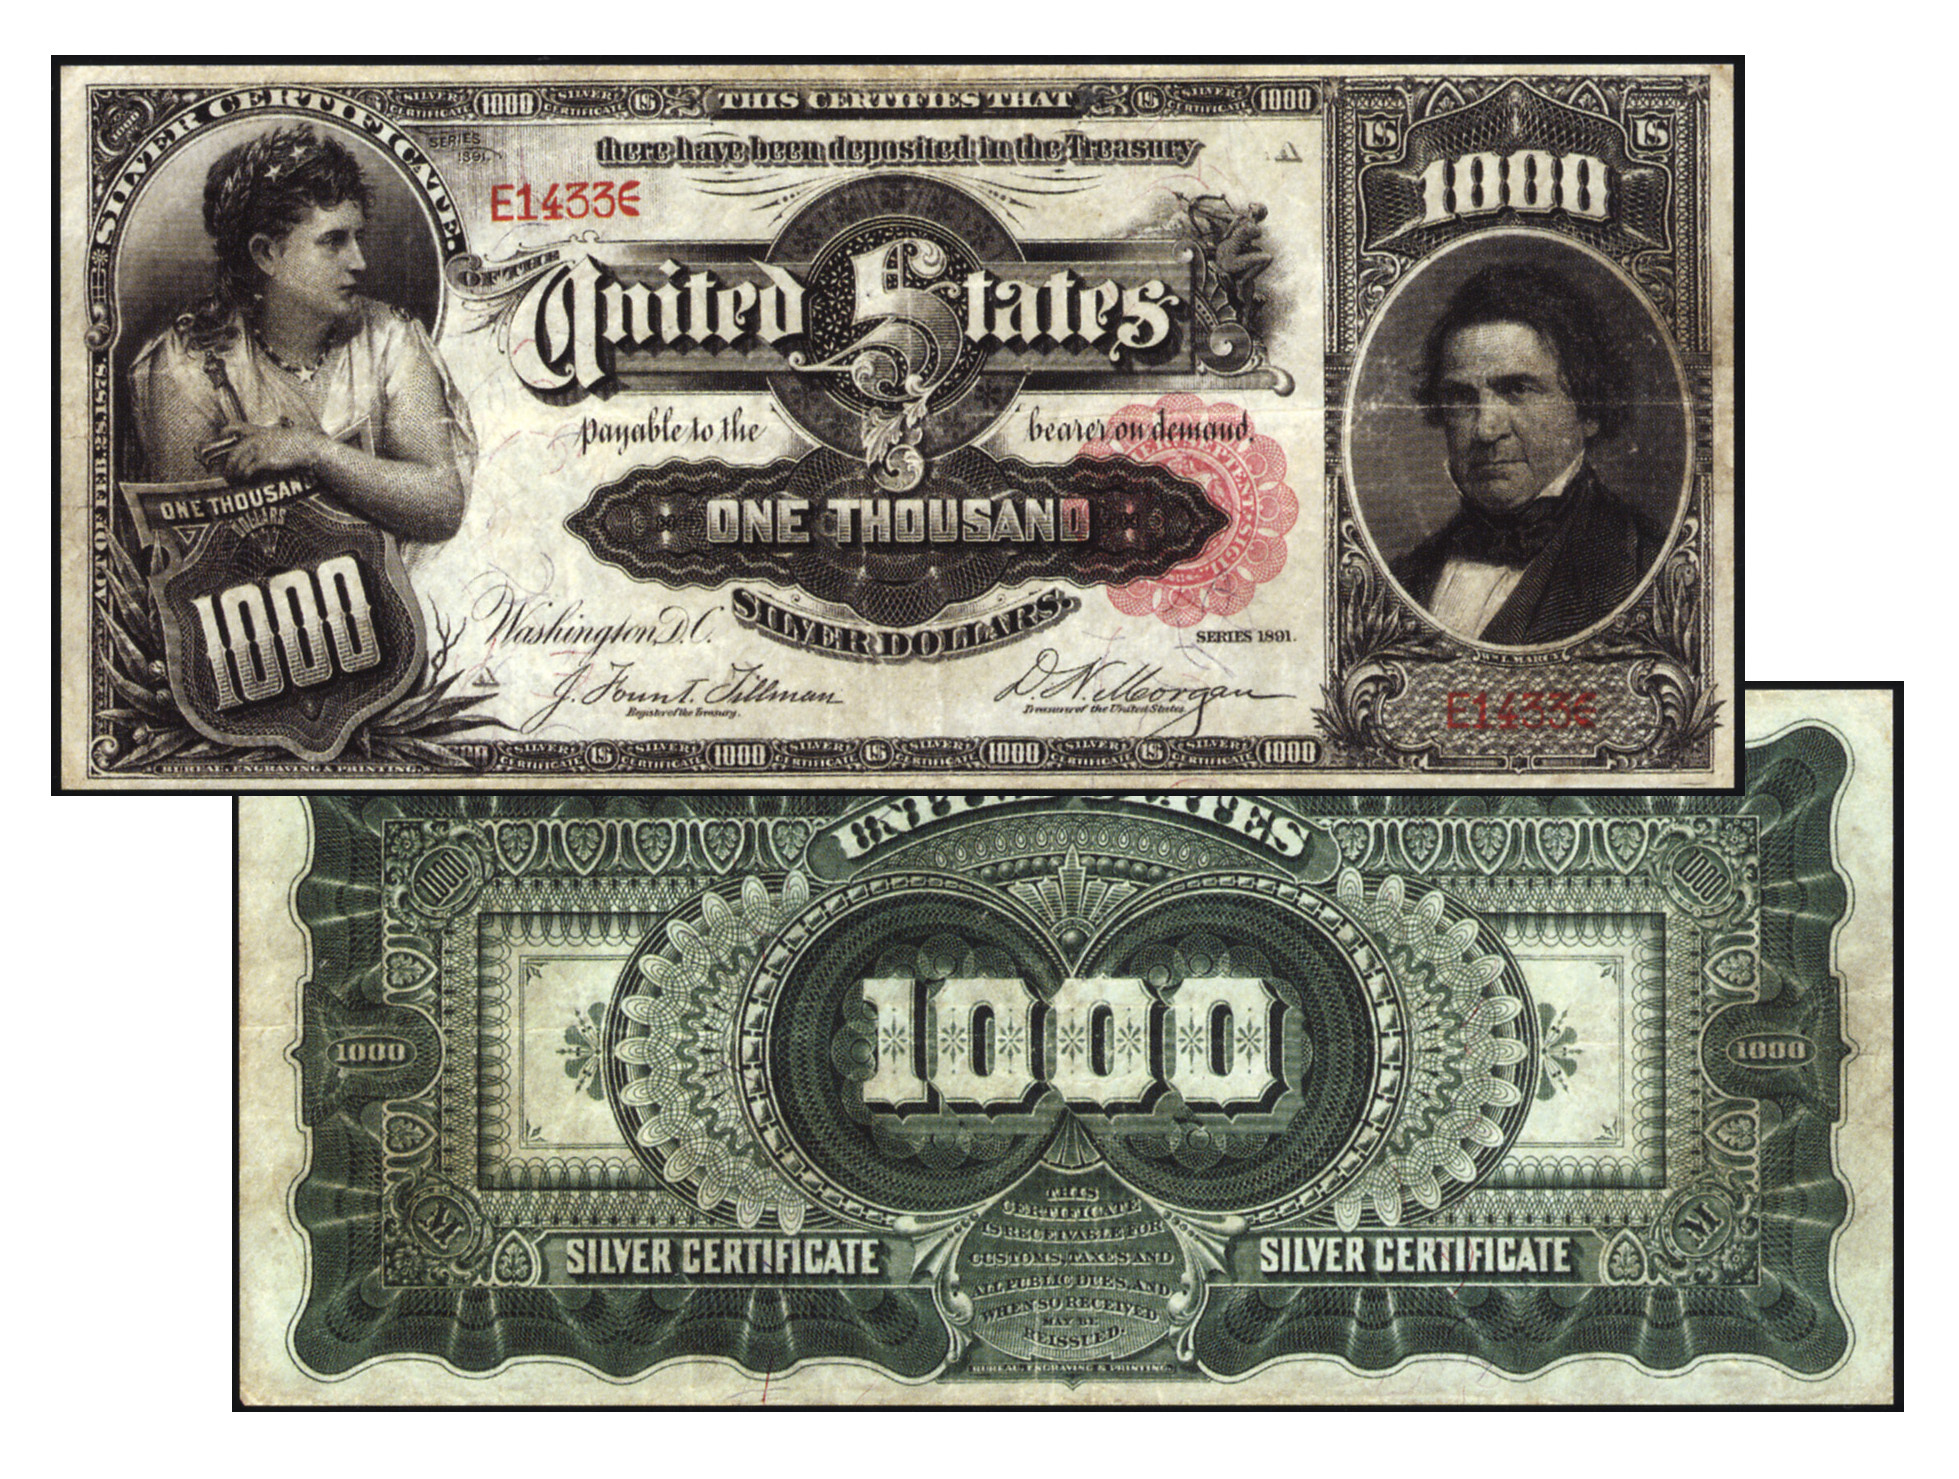 Stacks Bowers Galleries Sells 1891 1000 Marcy Silver Certificate